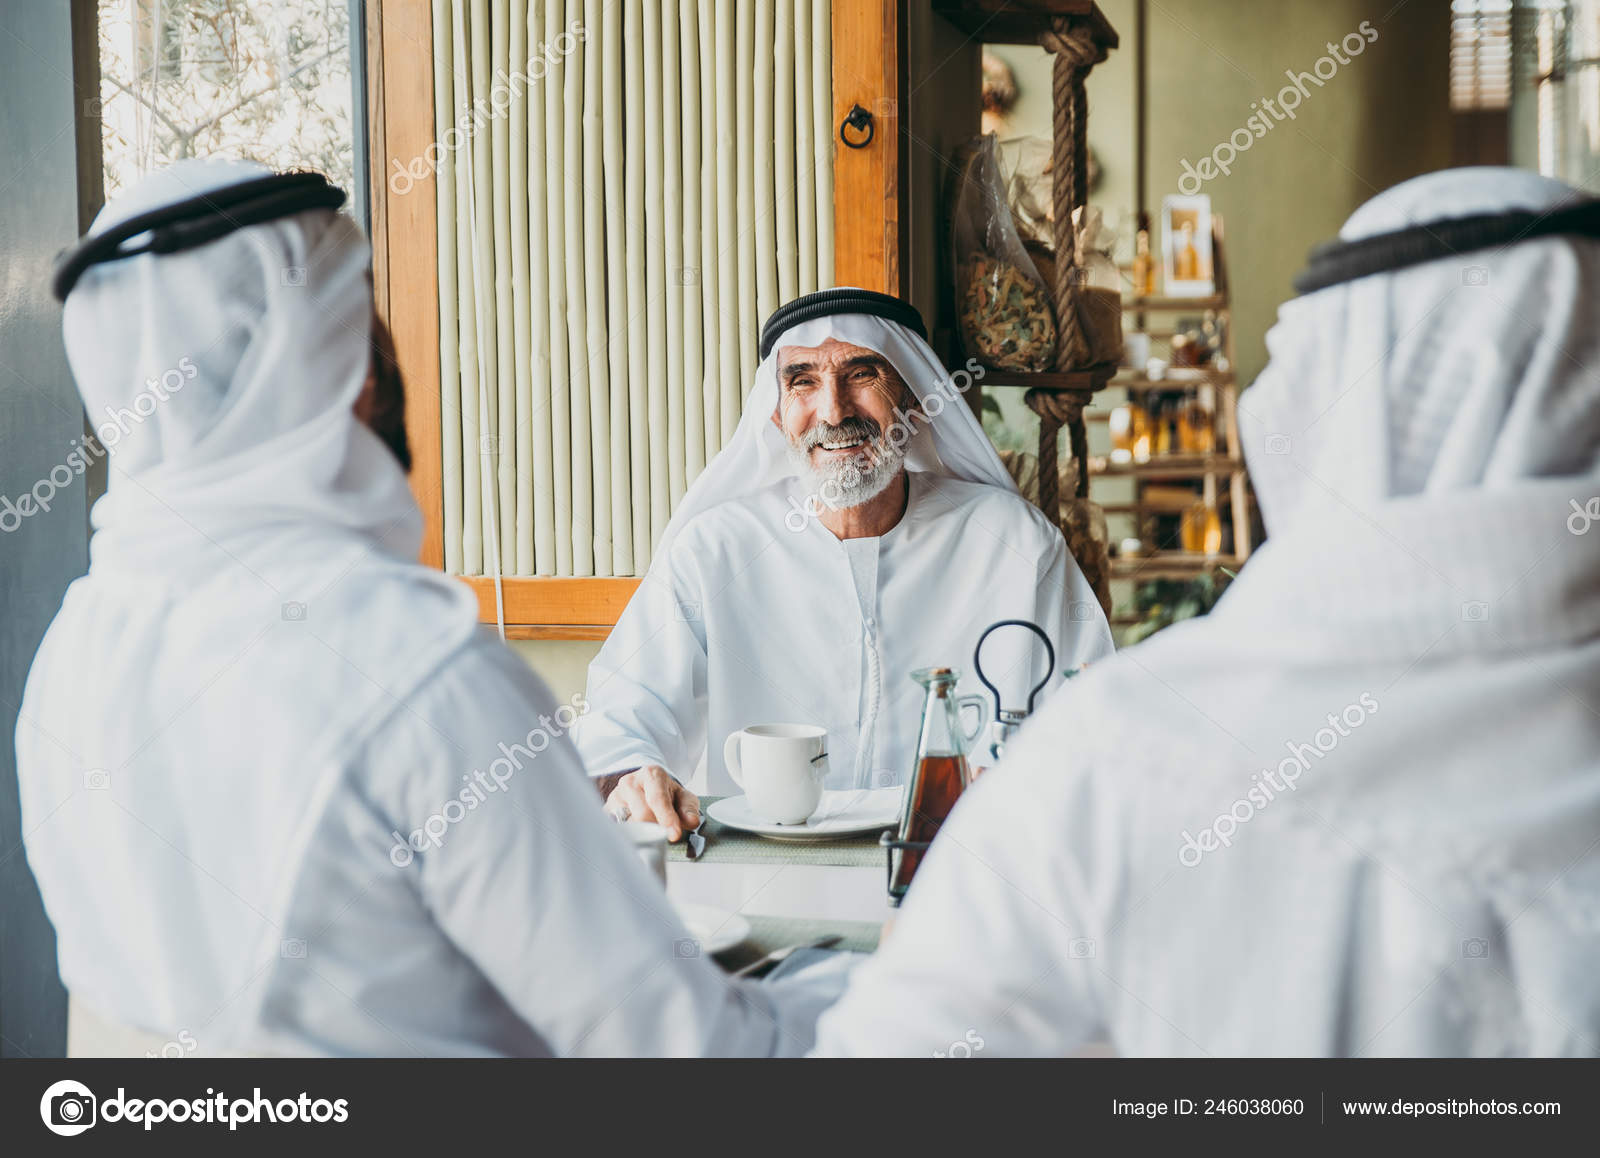 Three Business Men Having Tea Dubai Wearing Traditional Emirati